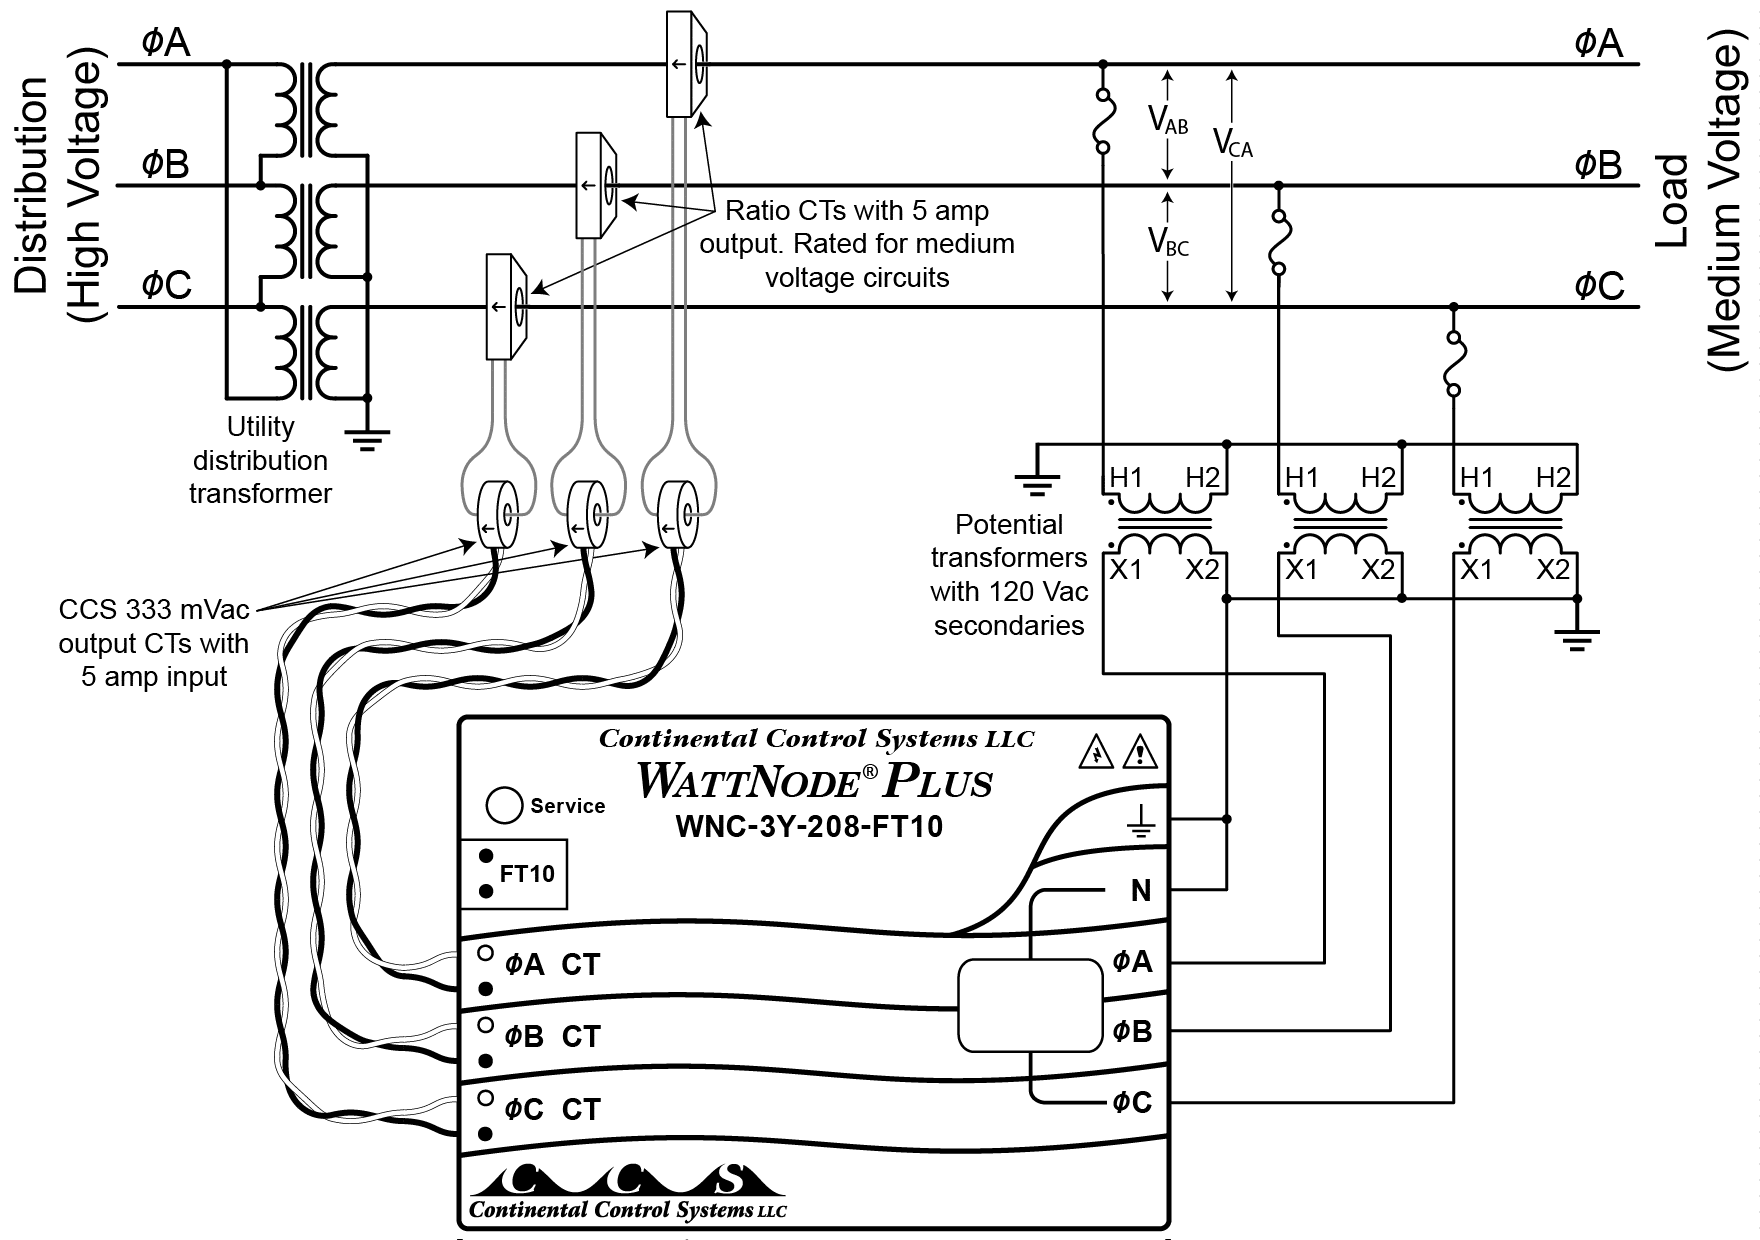 Power Factor Meter Wiring Diagram : 33 Wiring Diagram